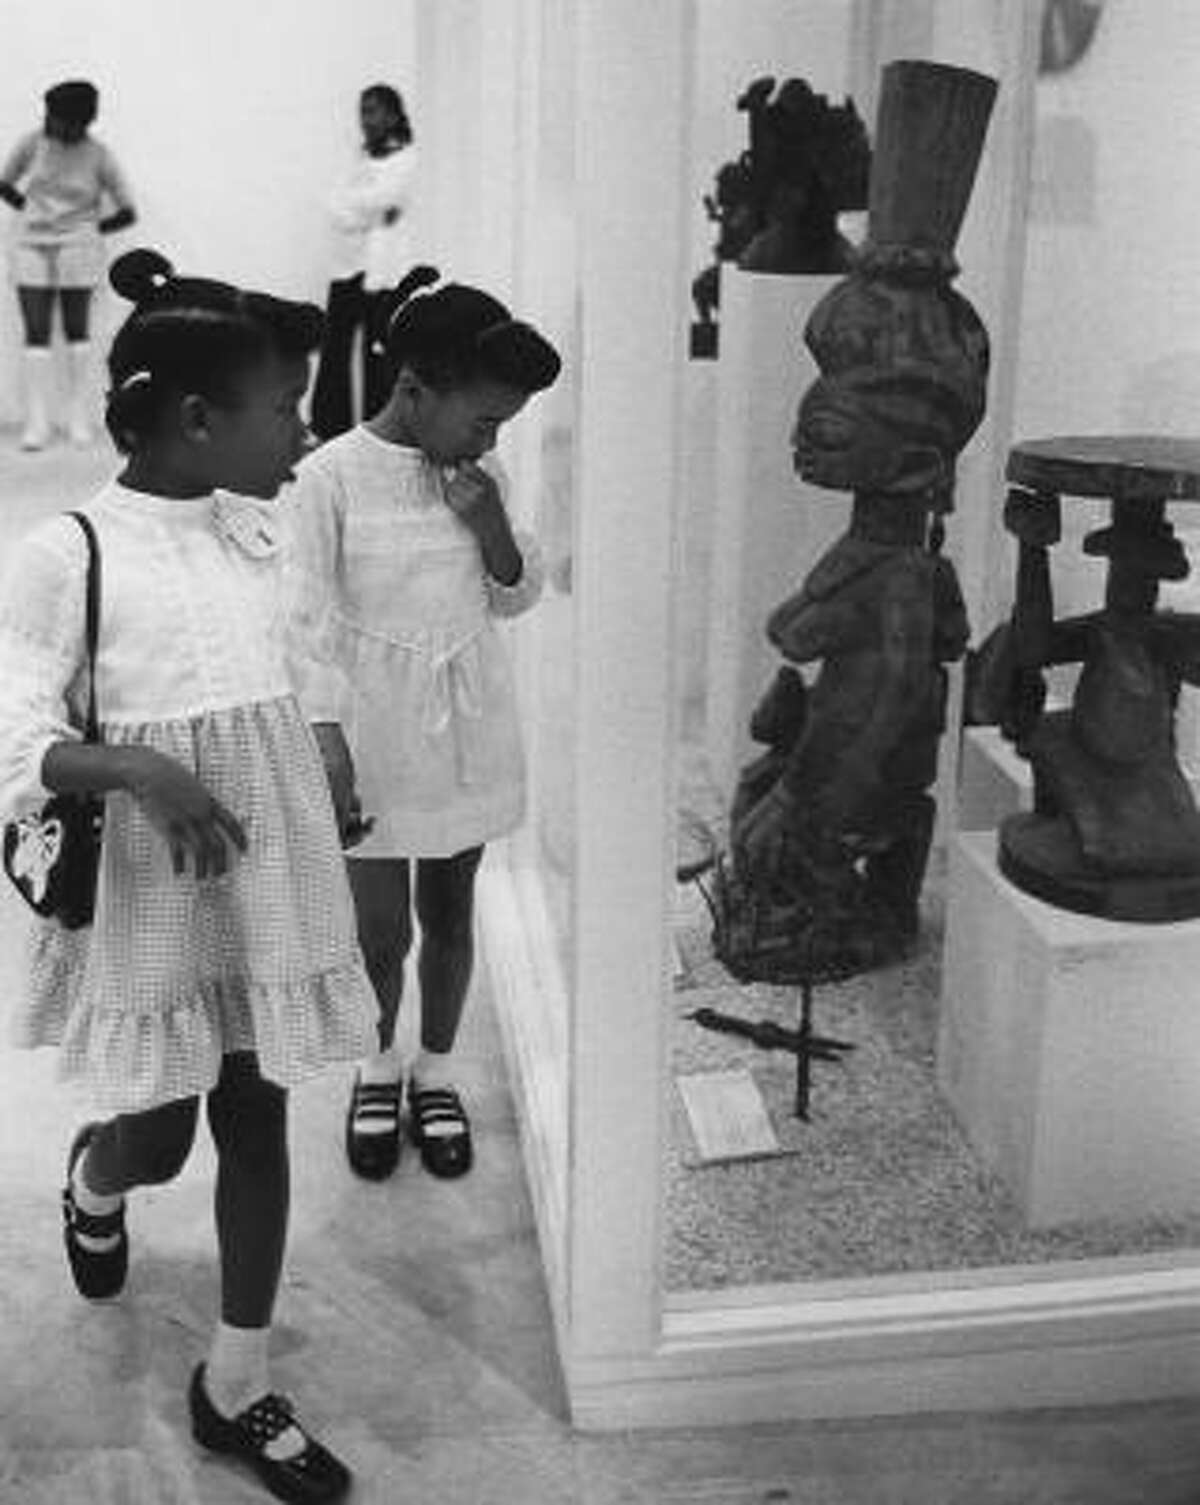 Children visit the 1973 exhibit Tribal Art of Africa at the Black Arts Gallery at the De Luxe Theater. This photograph is included in the new book Art and Activism: Projects of John and Dominique de Menil.